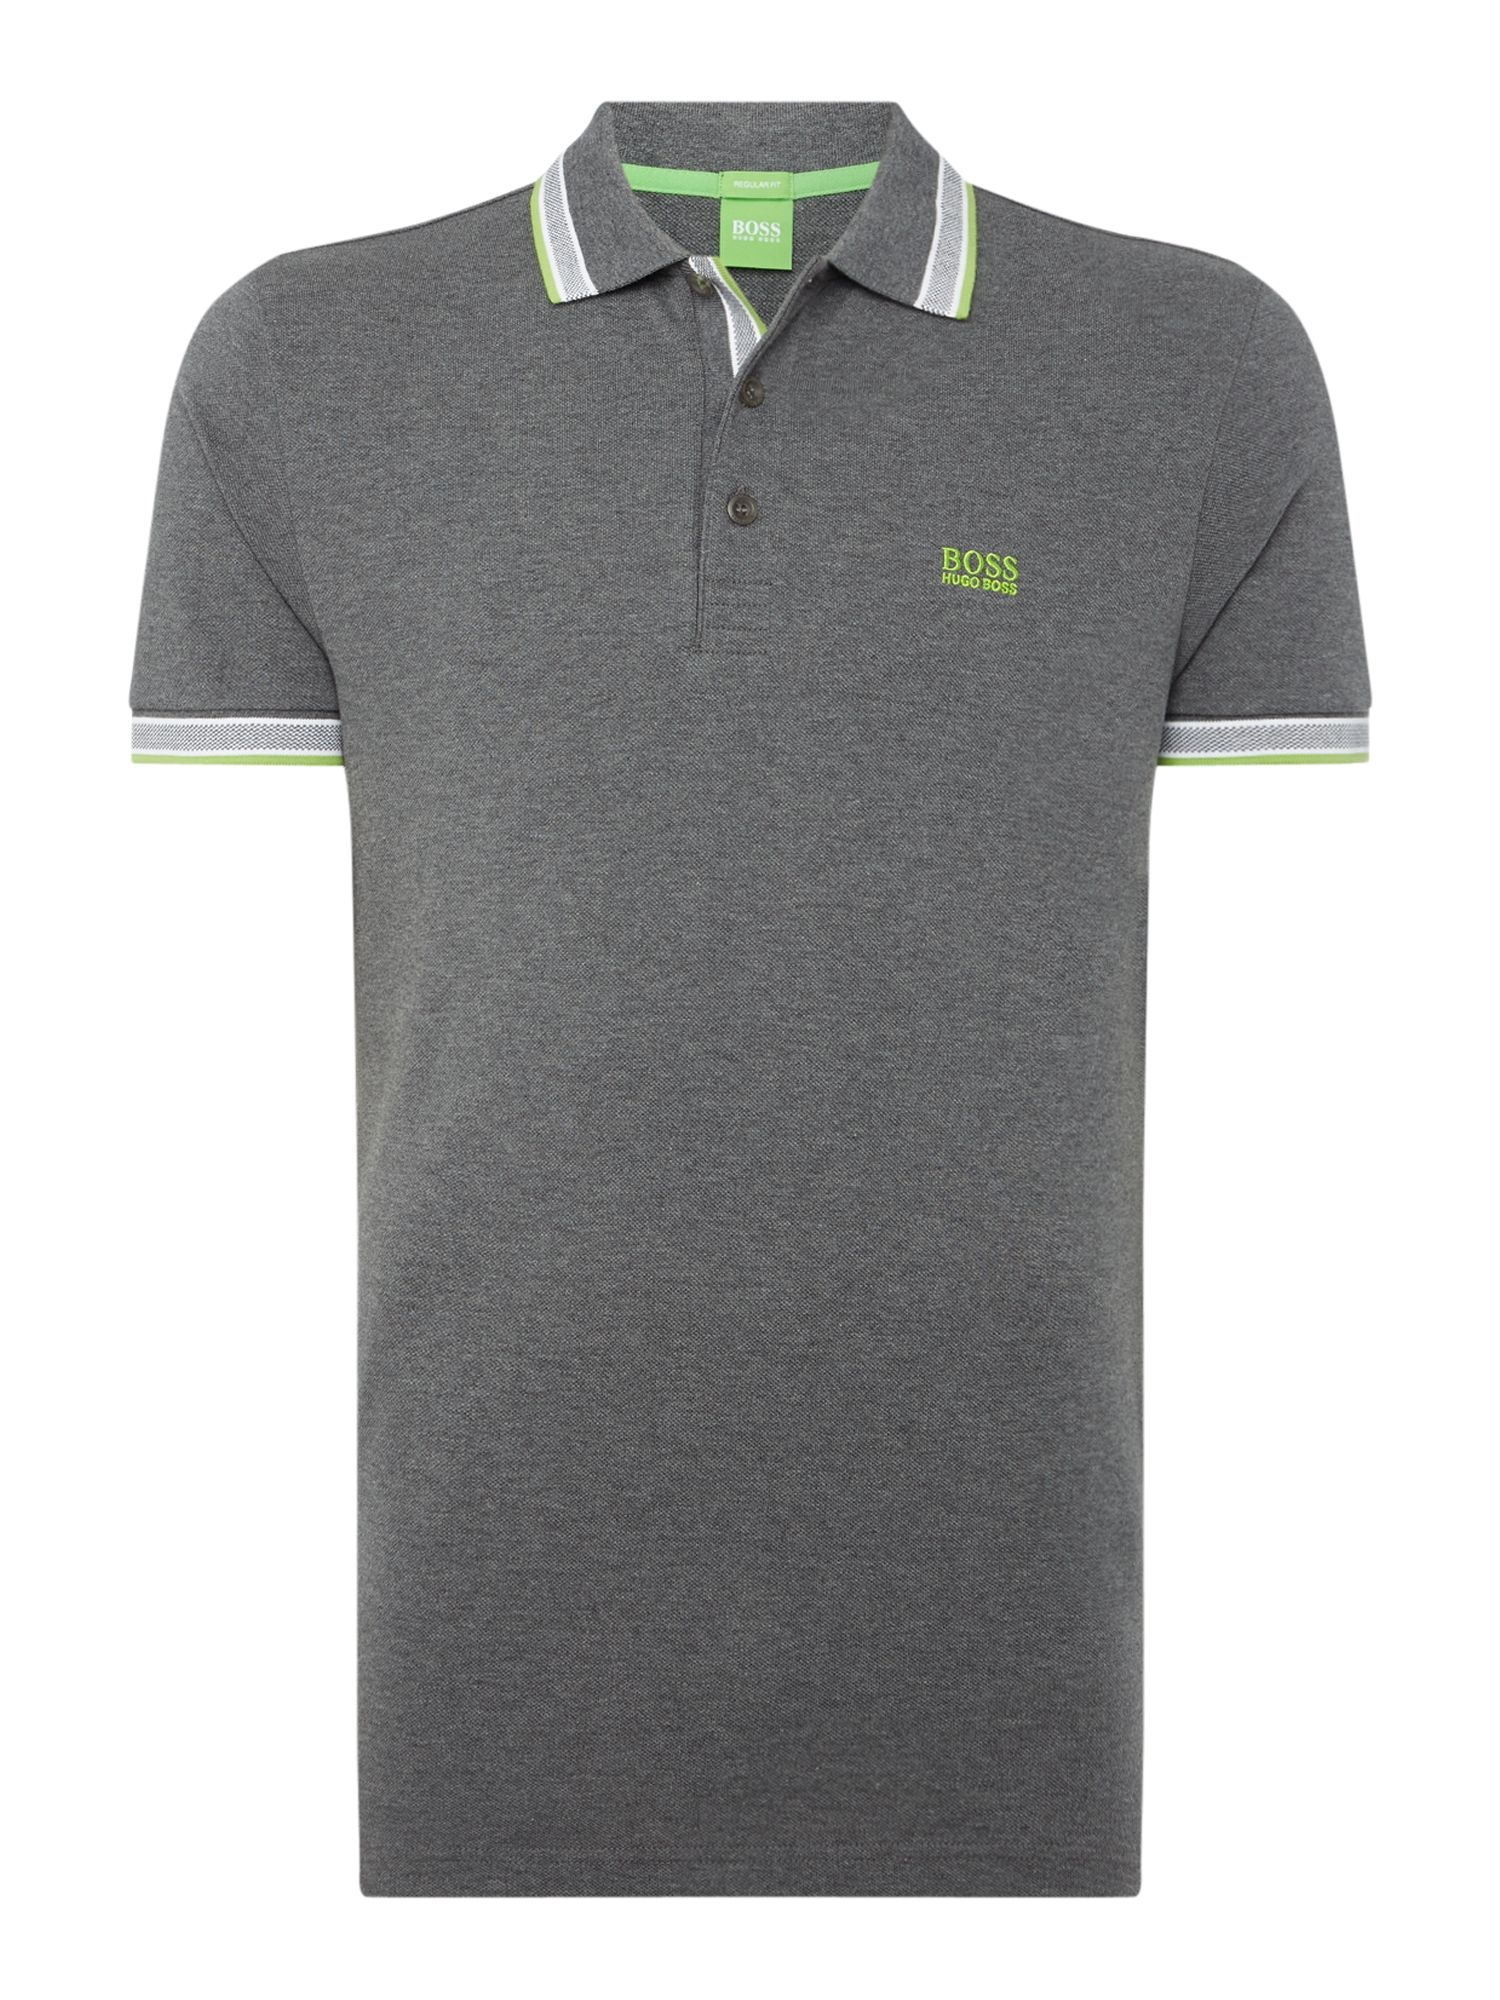 Men's Hugo Boss Paddy Short Sleeve Polo Shirt, Grey Marl